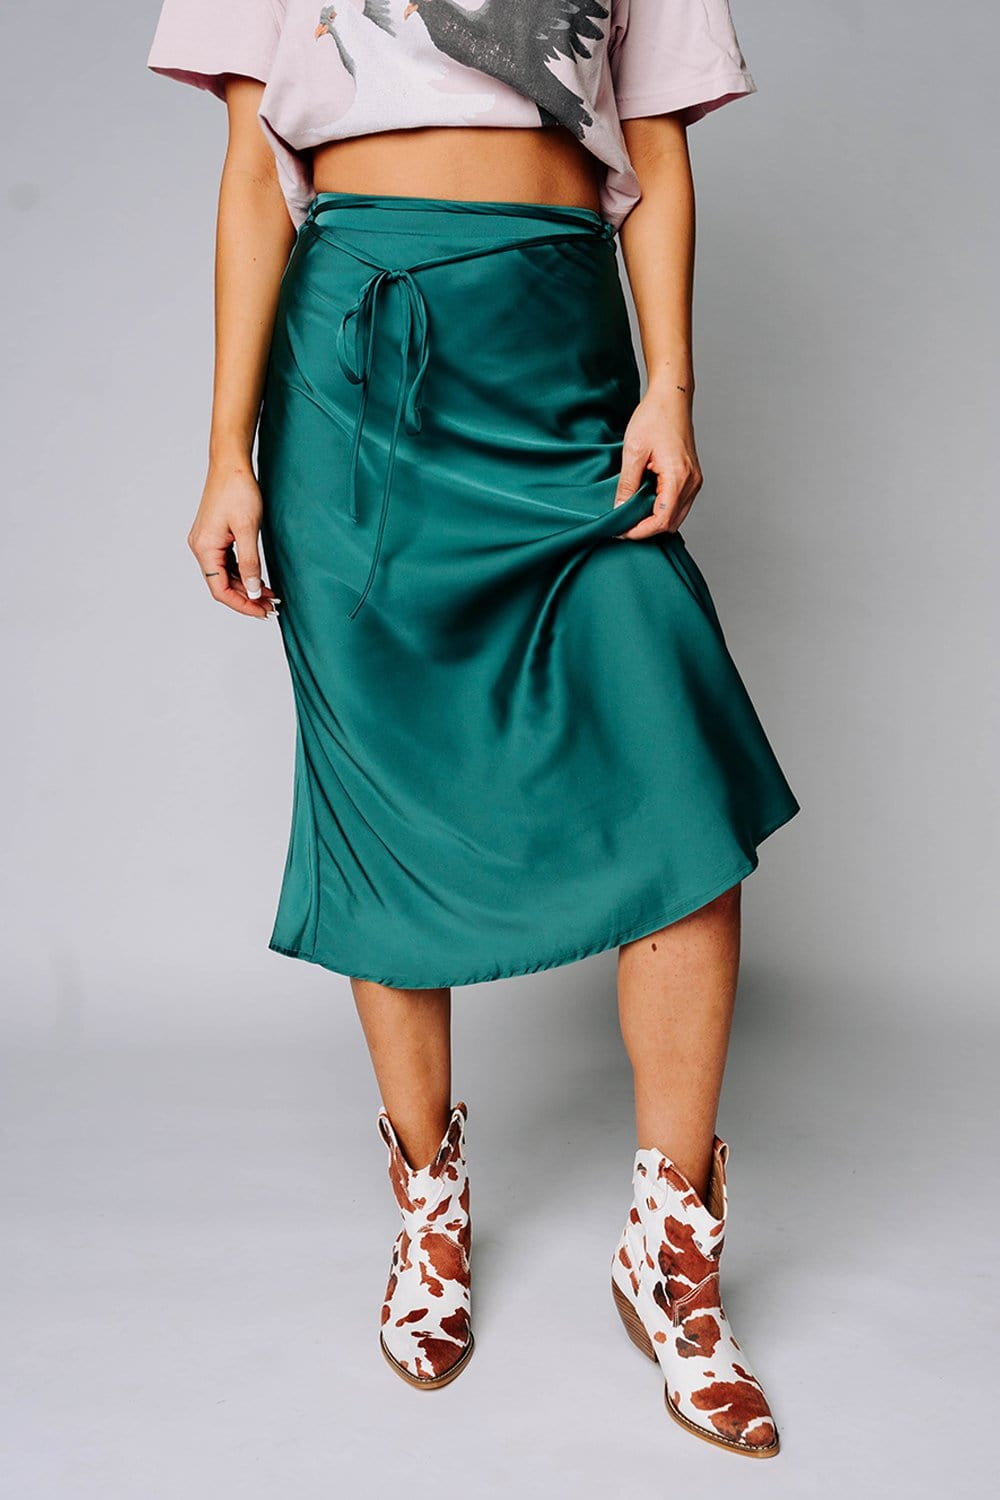 Renesmee Satin Midi Skirt in Teal